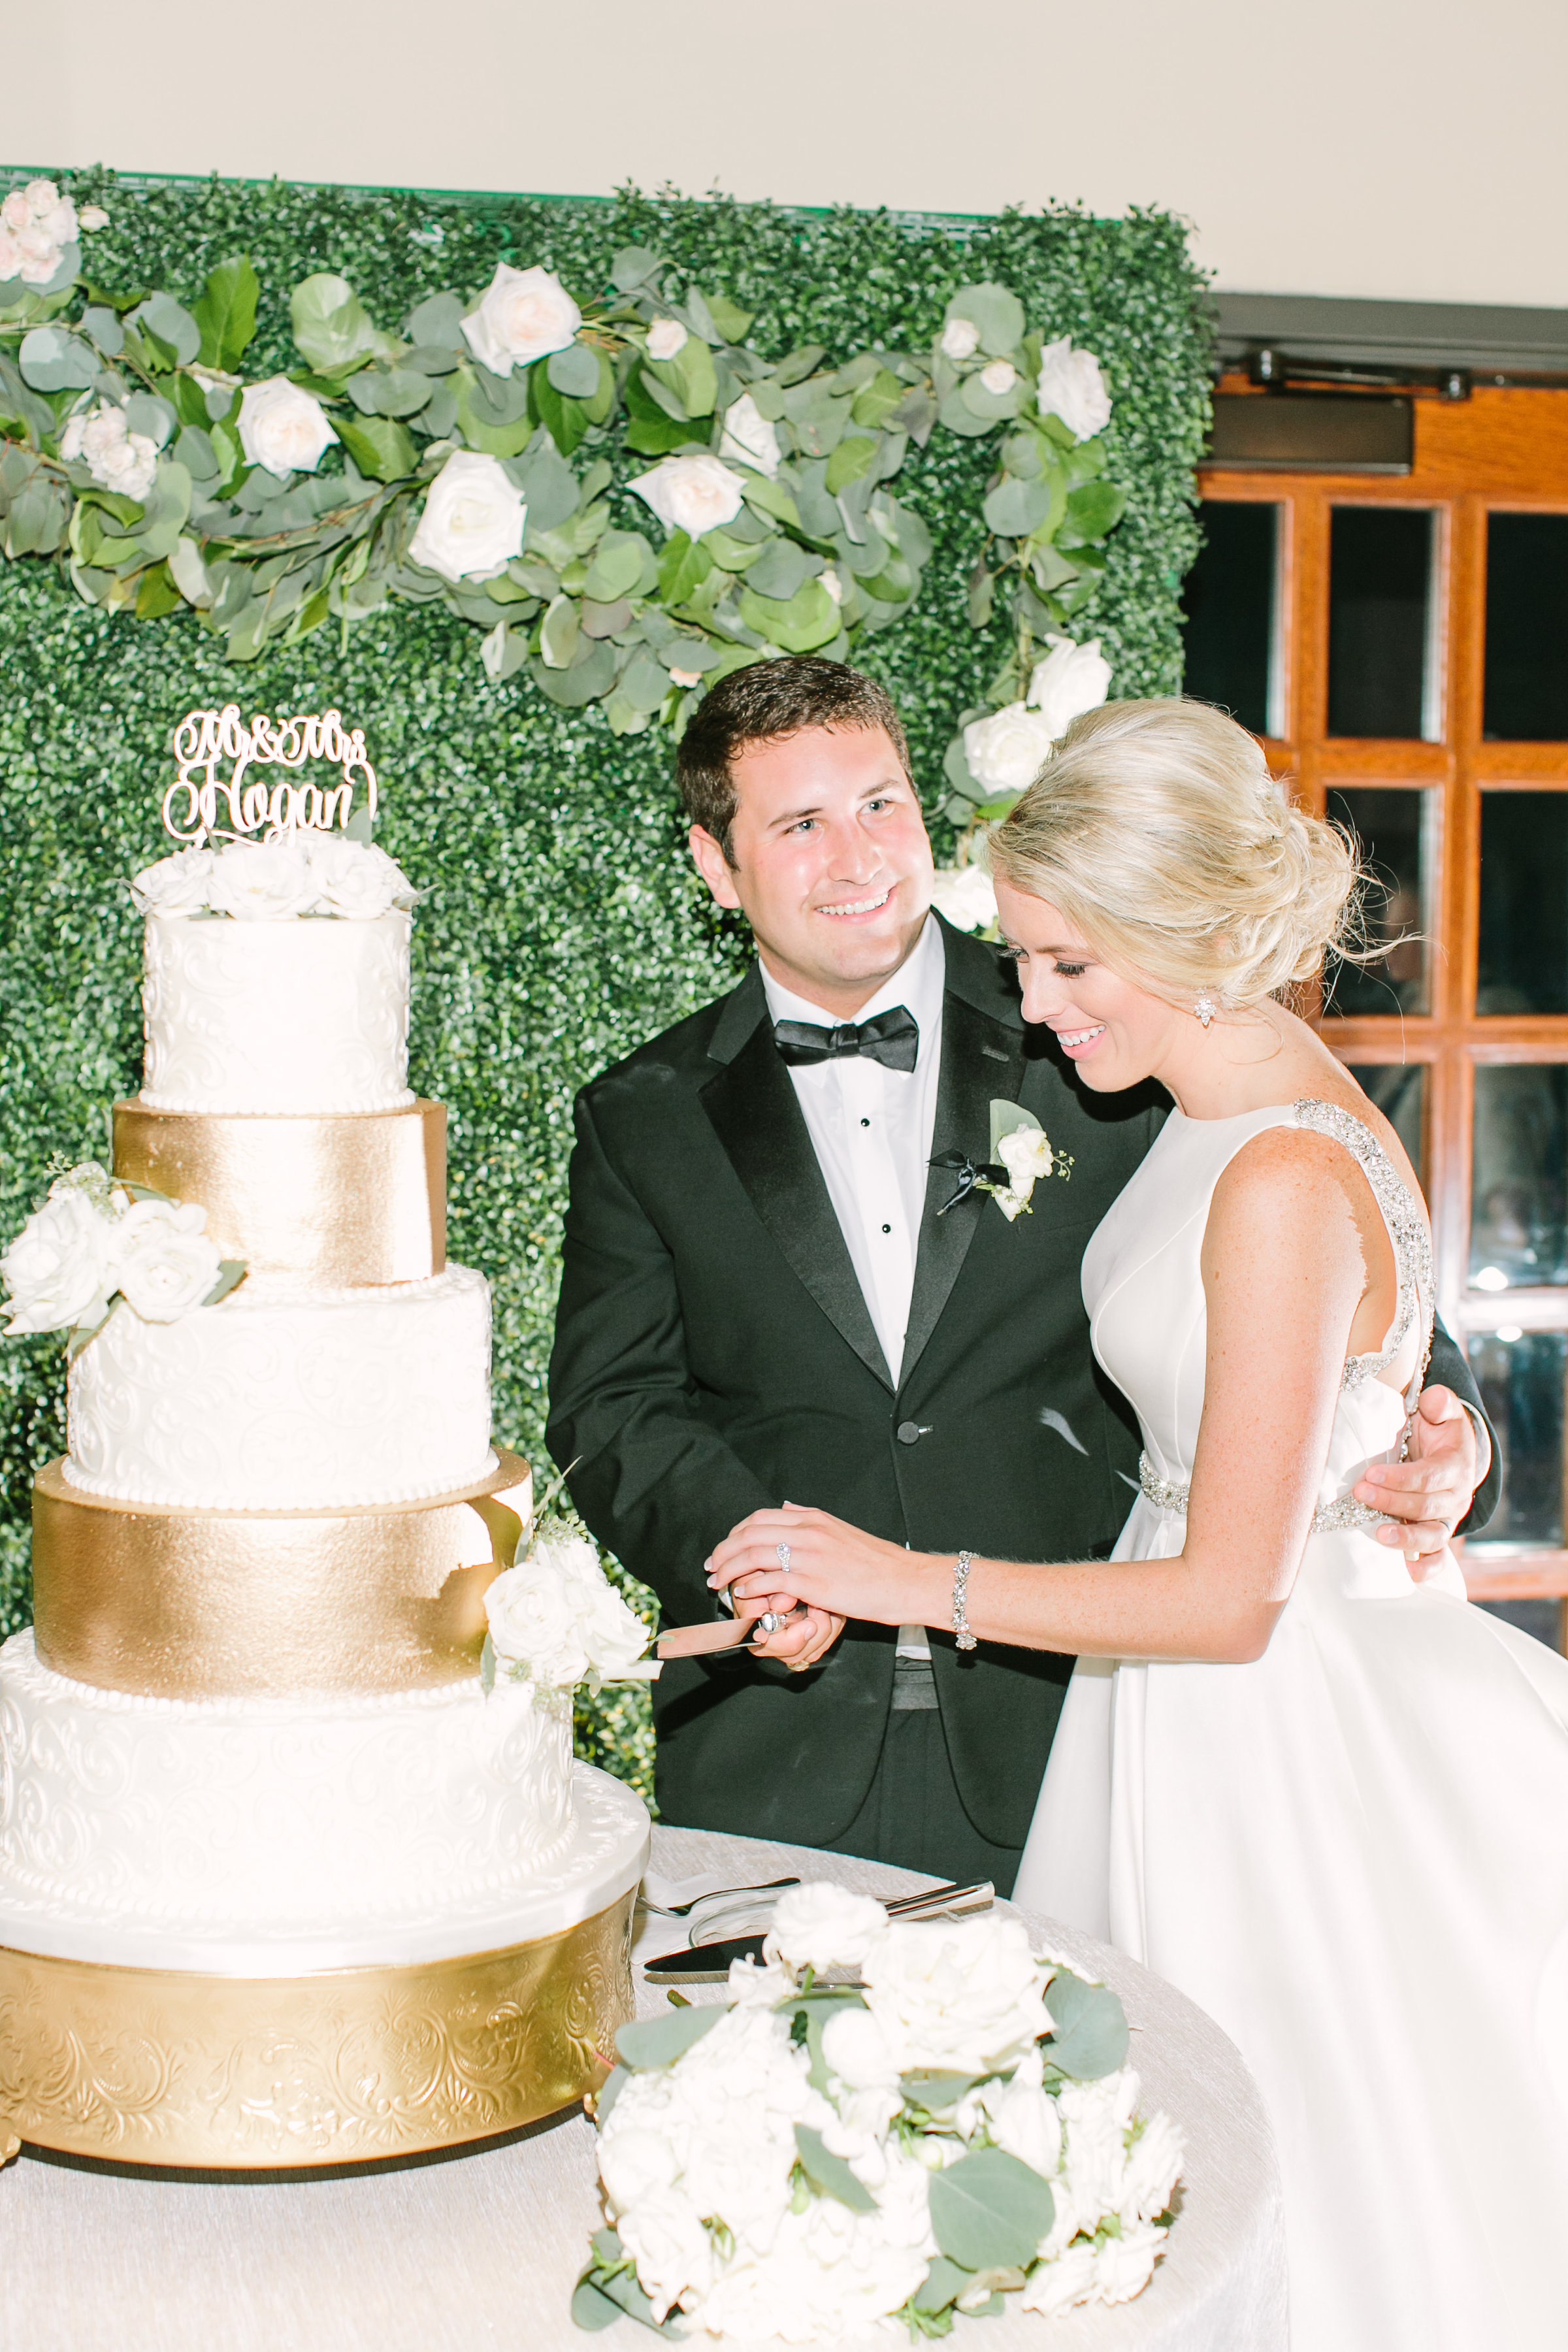 bride-groom-wedding-cake-gold-white-bouquet-greenery-backdrop-by-maxit-flower-design-in-houston-texas